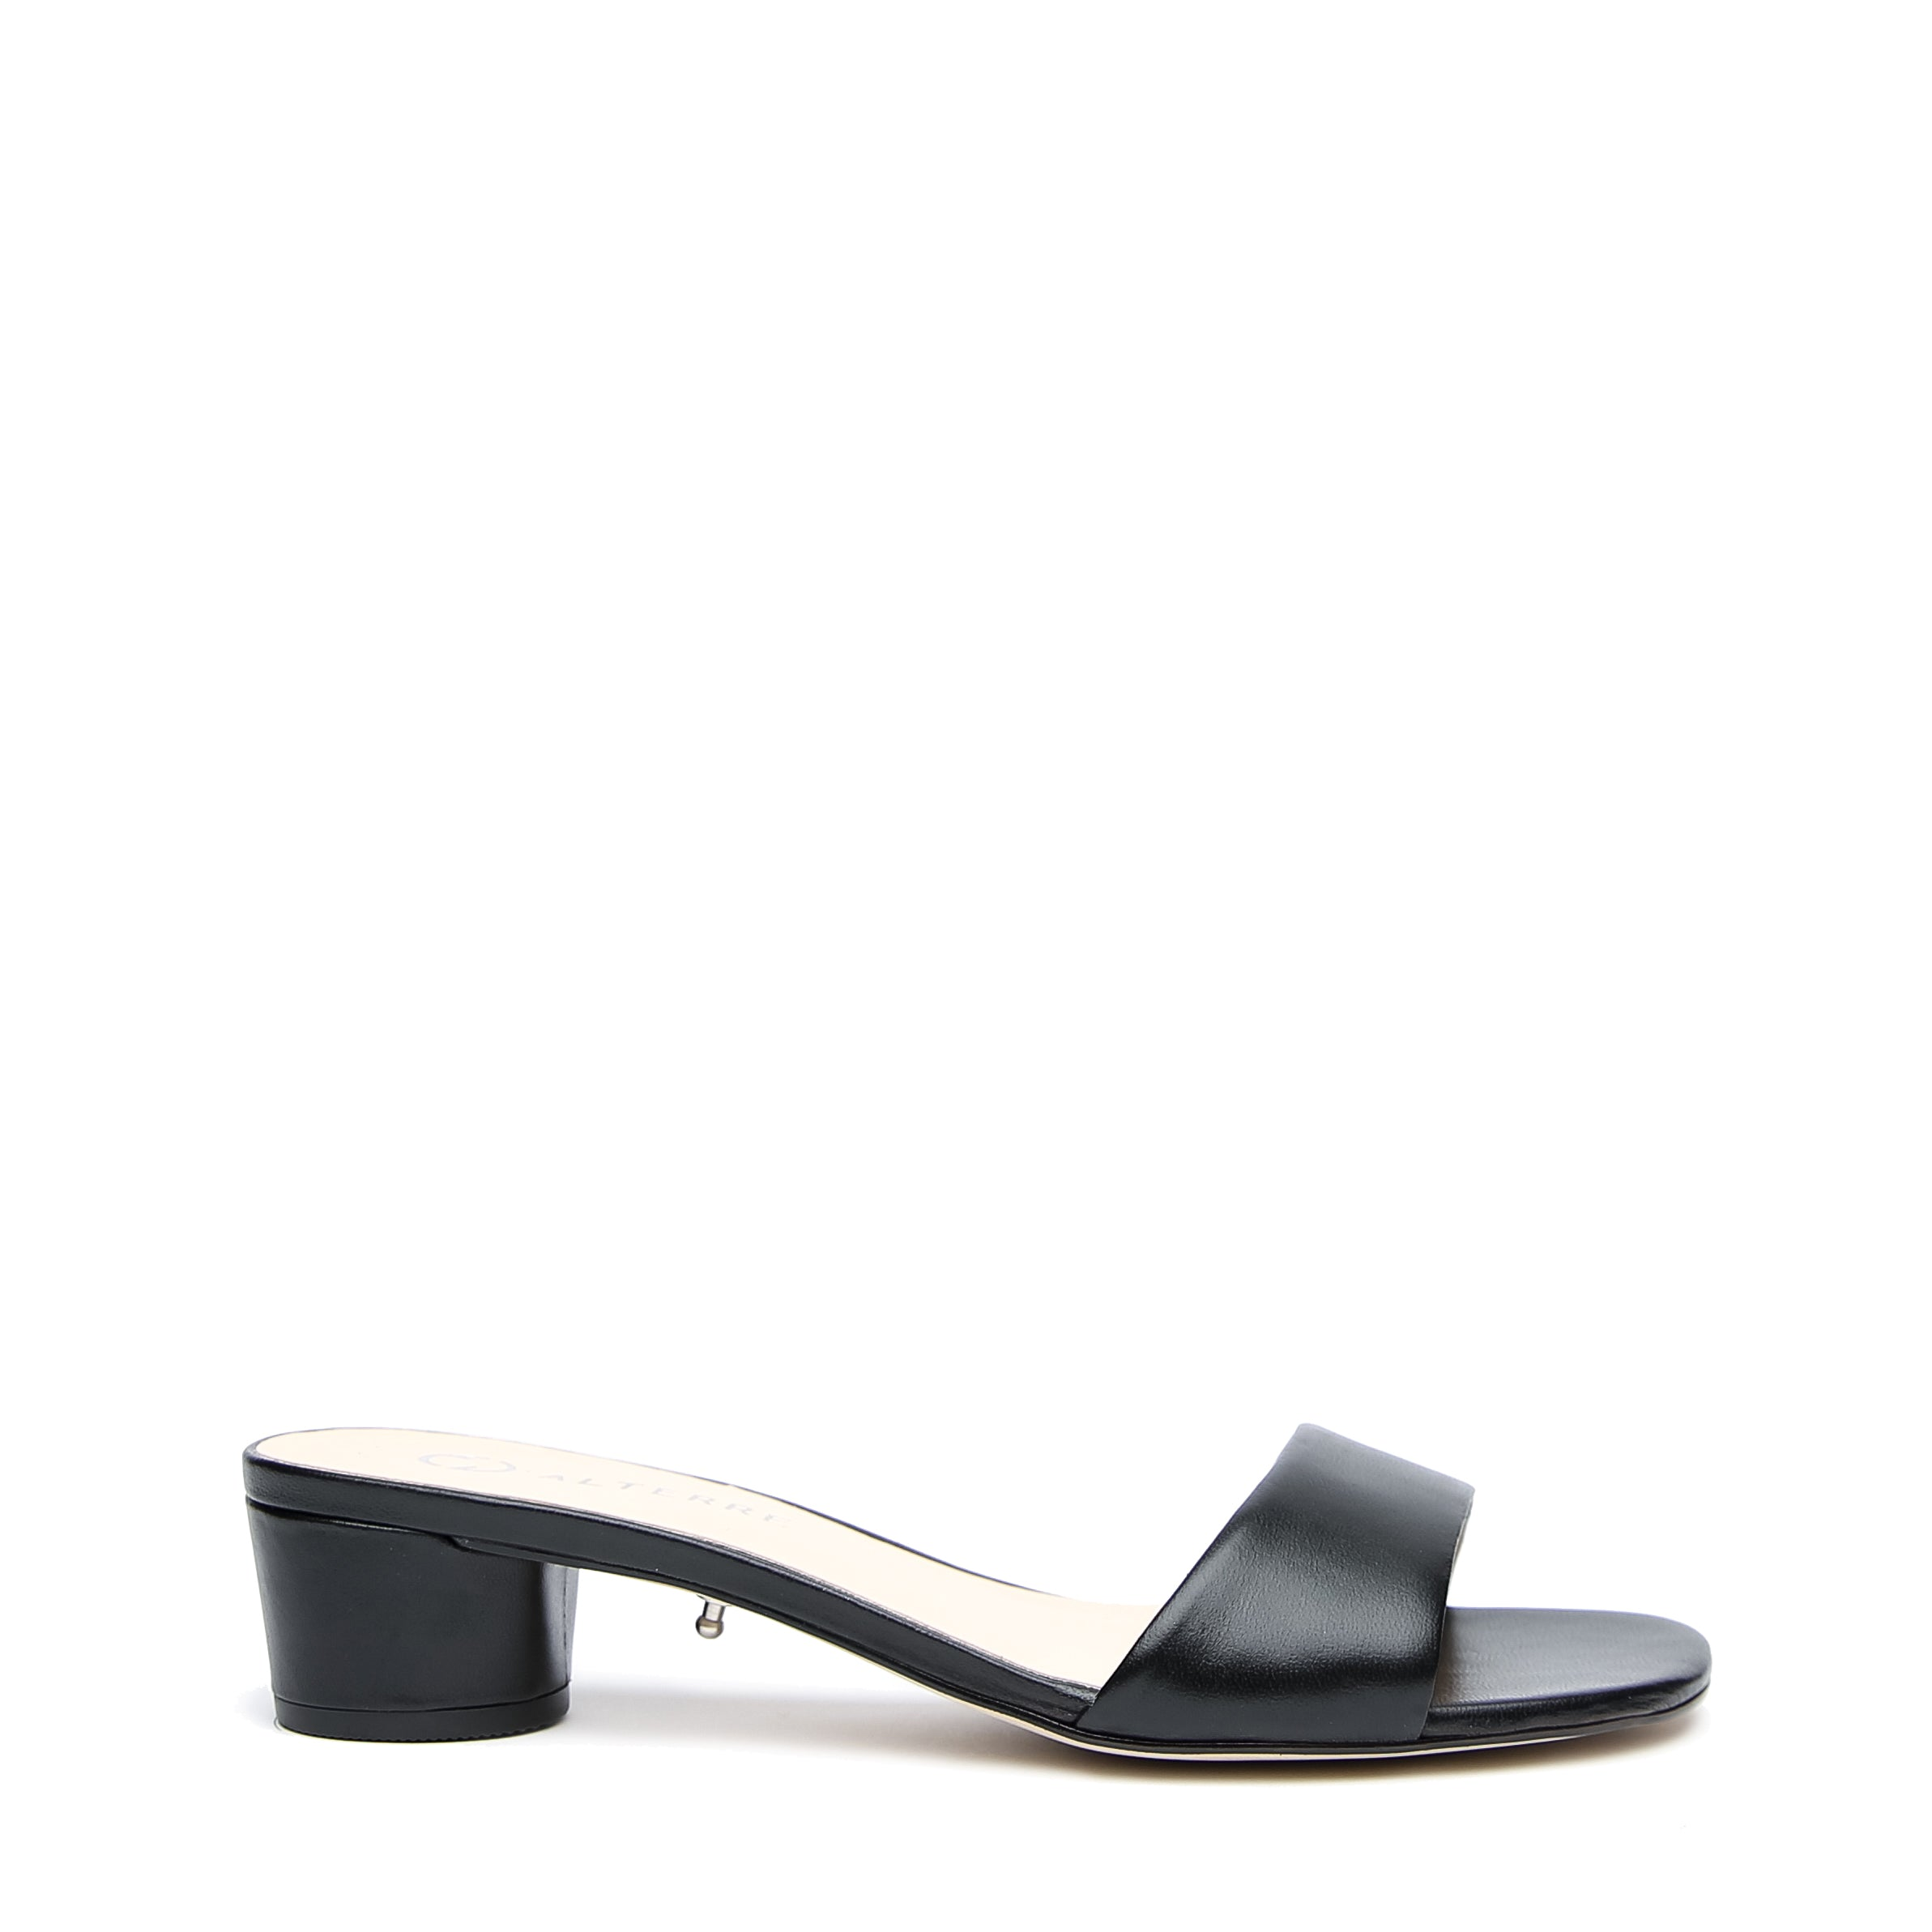 Black Customized Sandals | Alterre Interchangeable Sandals - Sustainable Shoes & Ethical Footwear